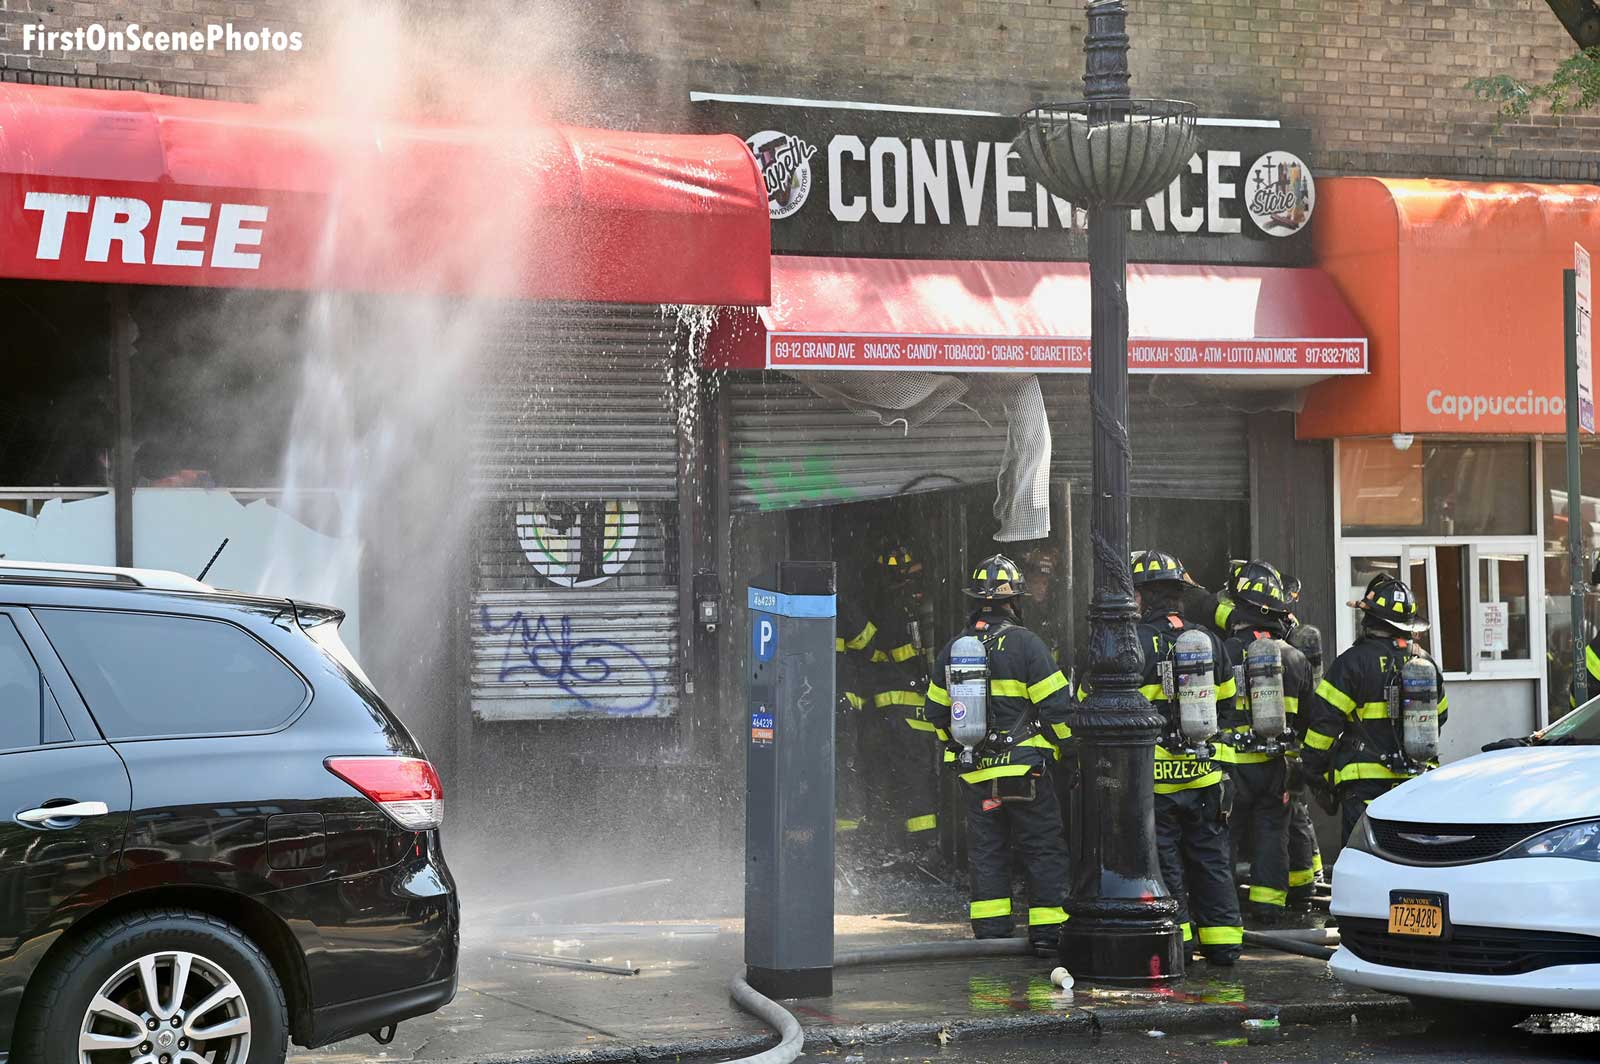 Water spray and firefighters on the fireground